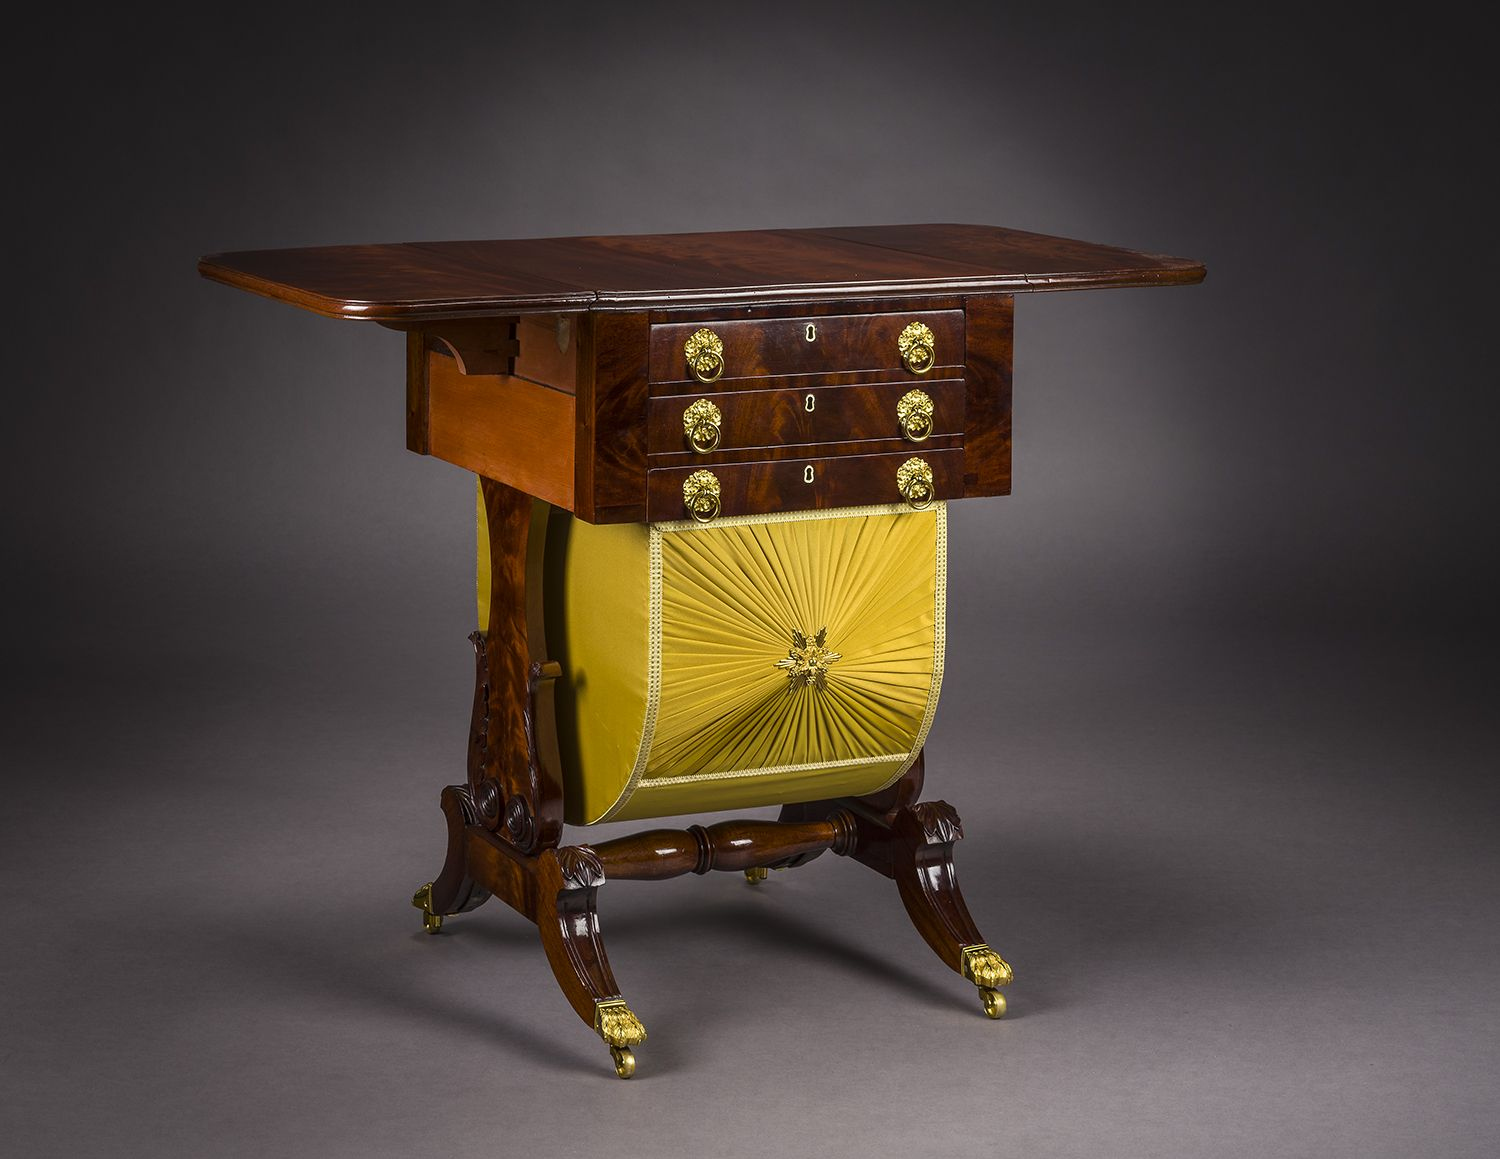 Neo-Classical Drop-Leaf Work Table with Lyre Ends, about 1828–29. Attributed to Rufus Pierce, Boston. Mahogany, with gilt-brass paw toe-caps and castors, drawer pulls, key-hole escutcheons, baize writing surface, and fabric on workbox, 28 13/16 in. high, 19 1/2 in. wide, 20 1/8 in. deep (at the castors). Oblique view with leaves extended.